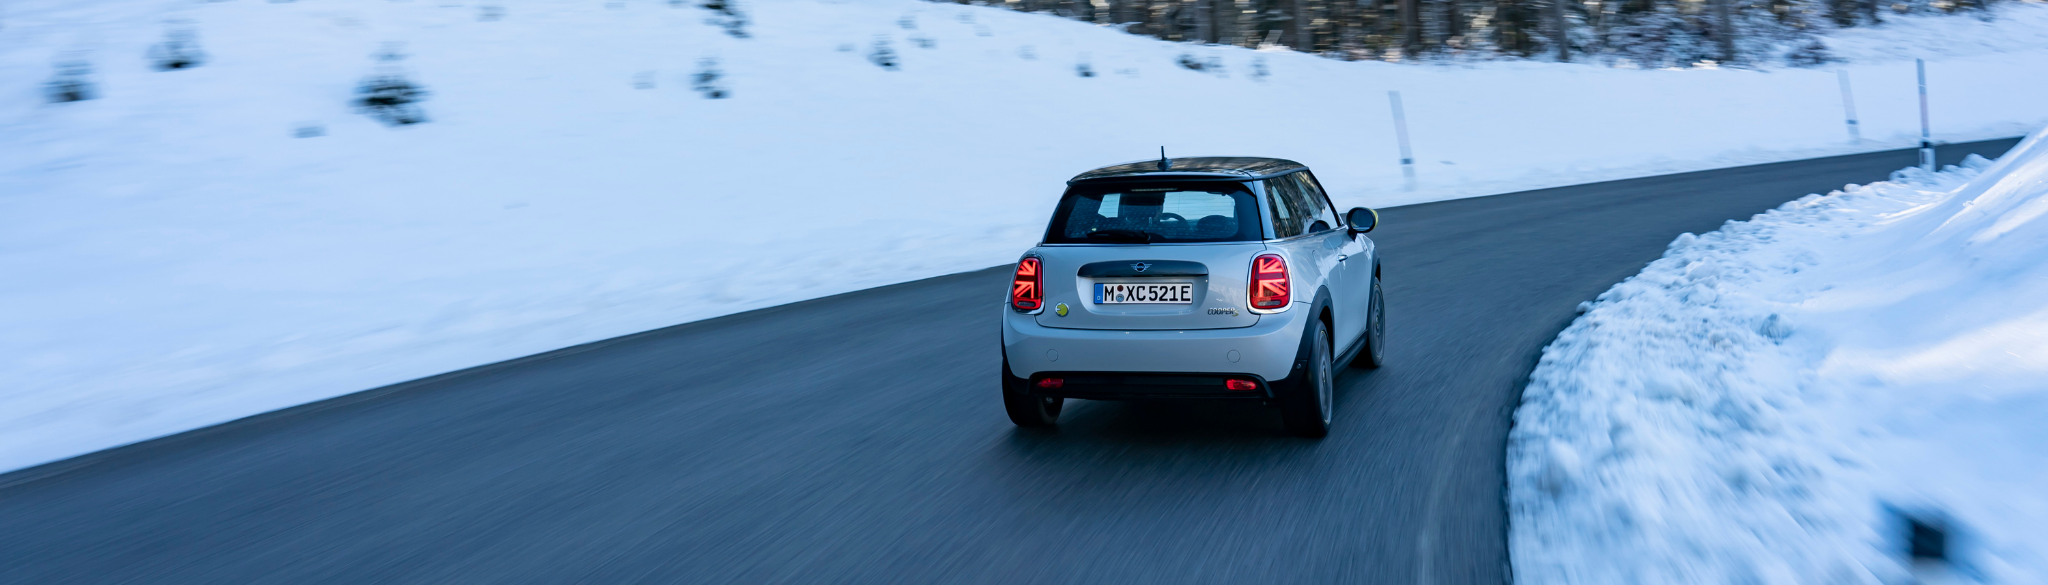 MINI Electric Driving In Snowy Conditions